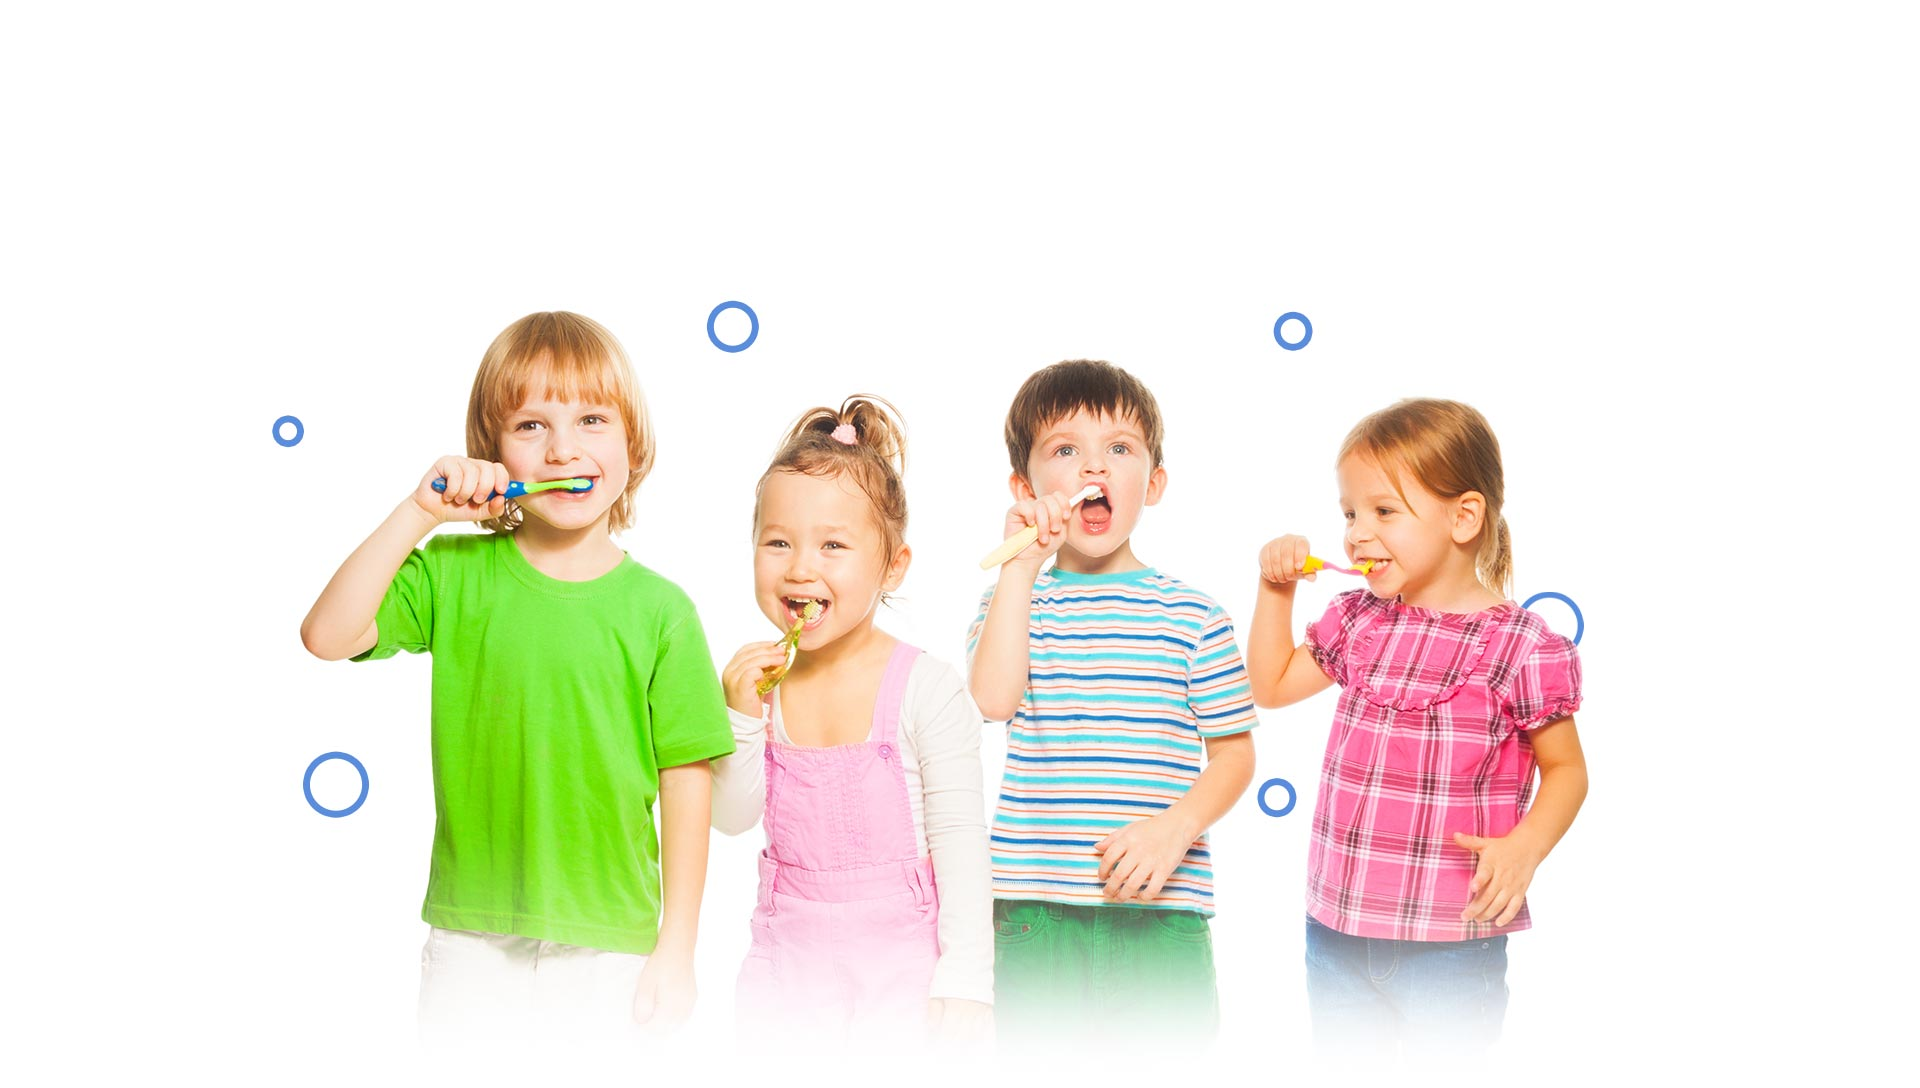 Group of happy children brushing their teeth